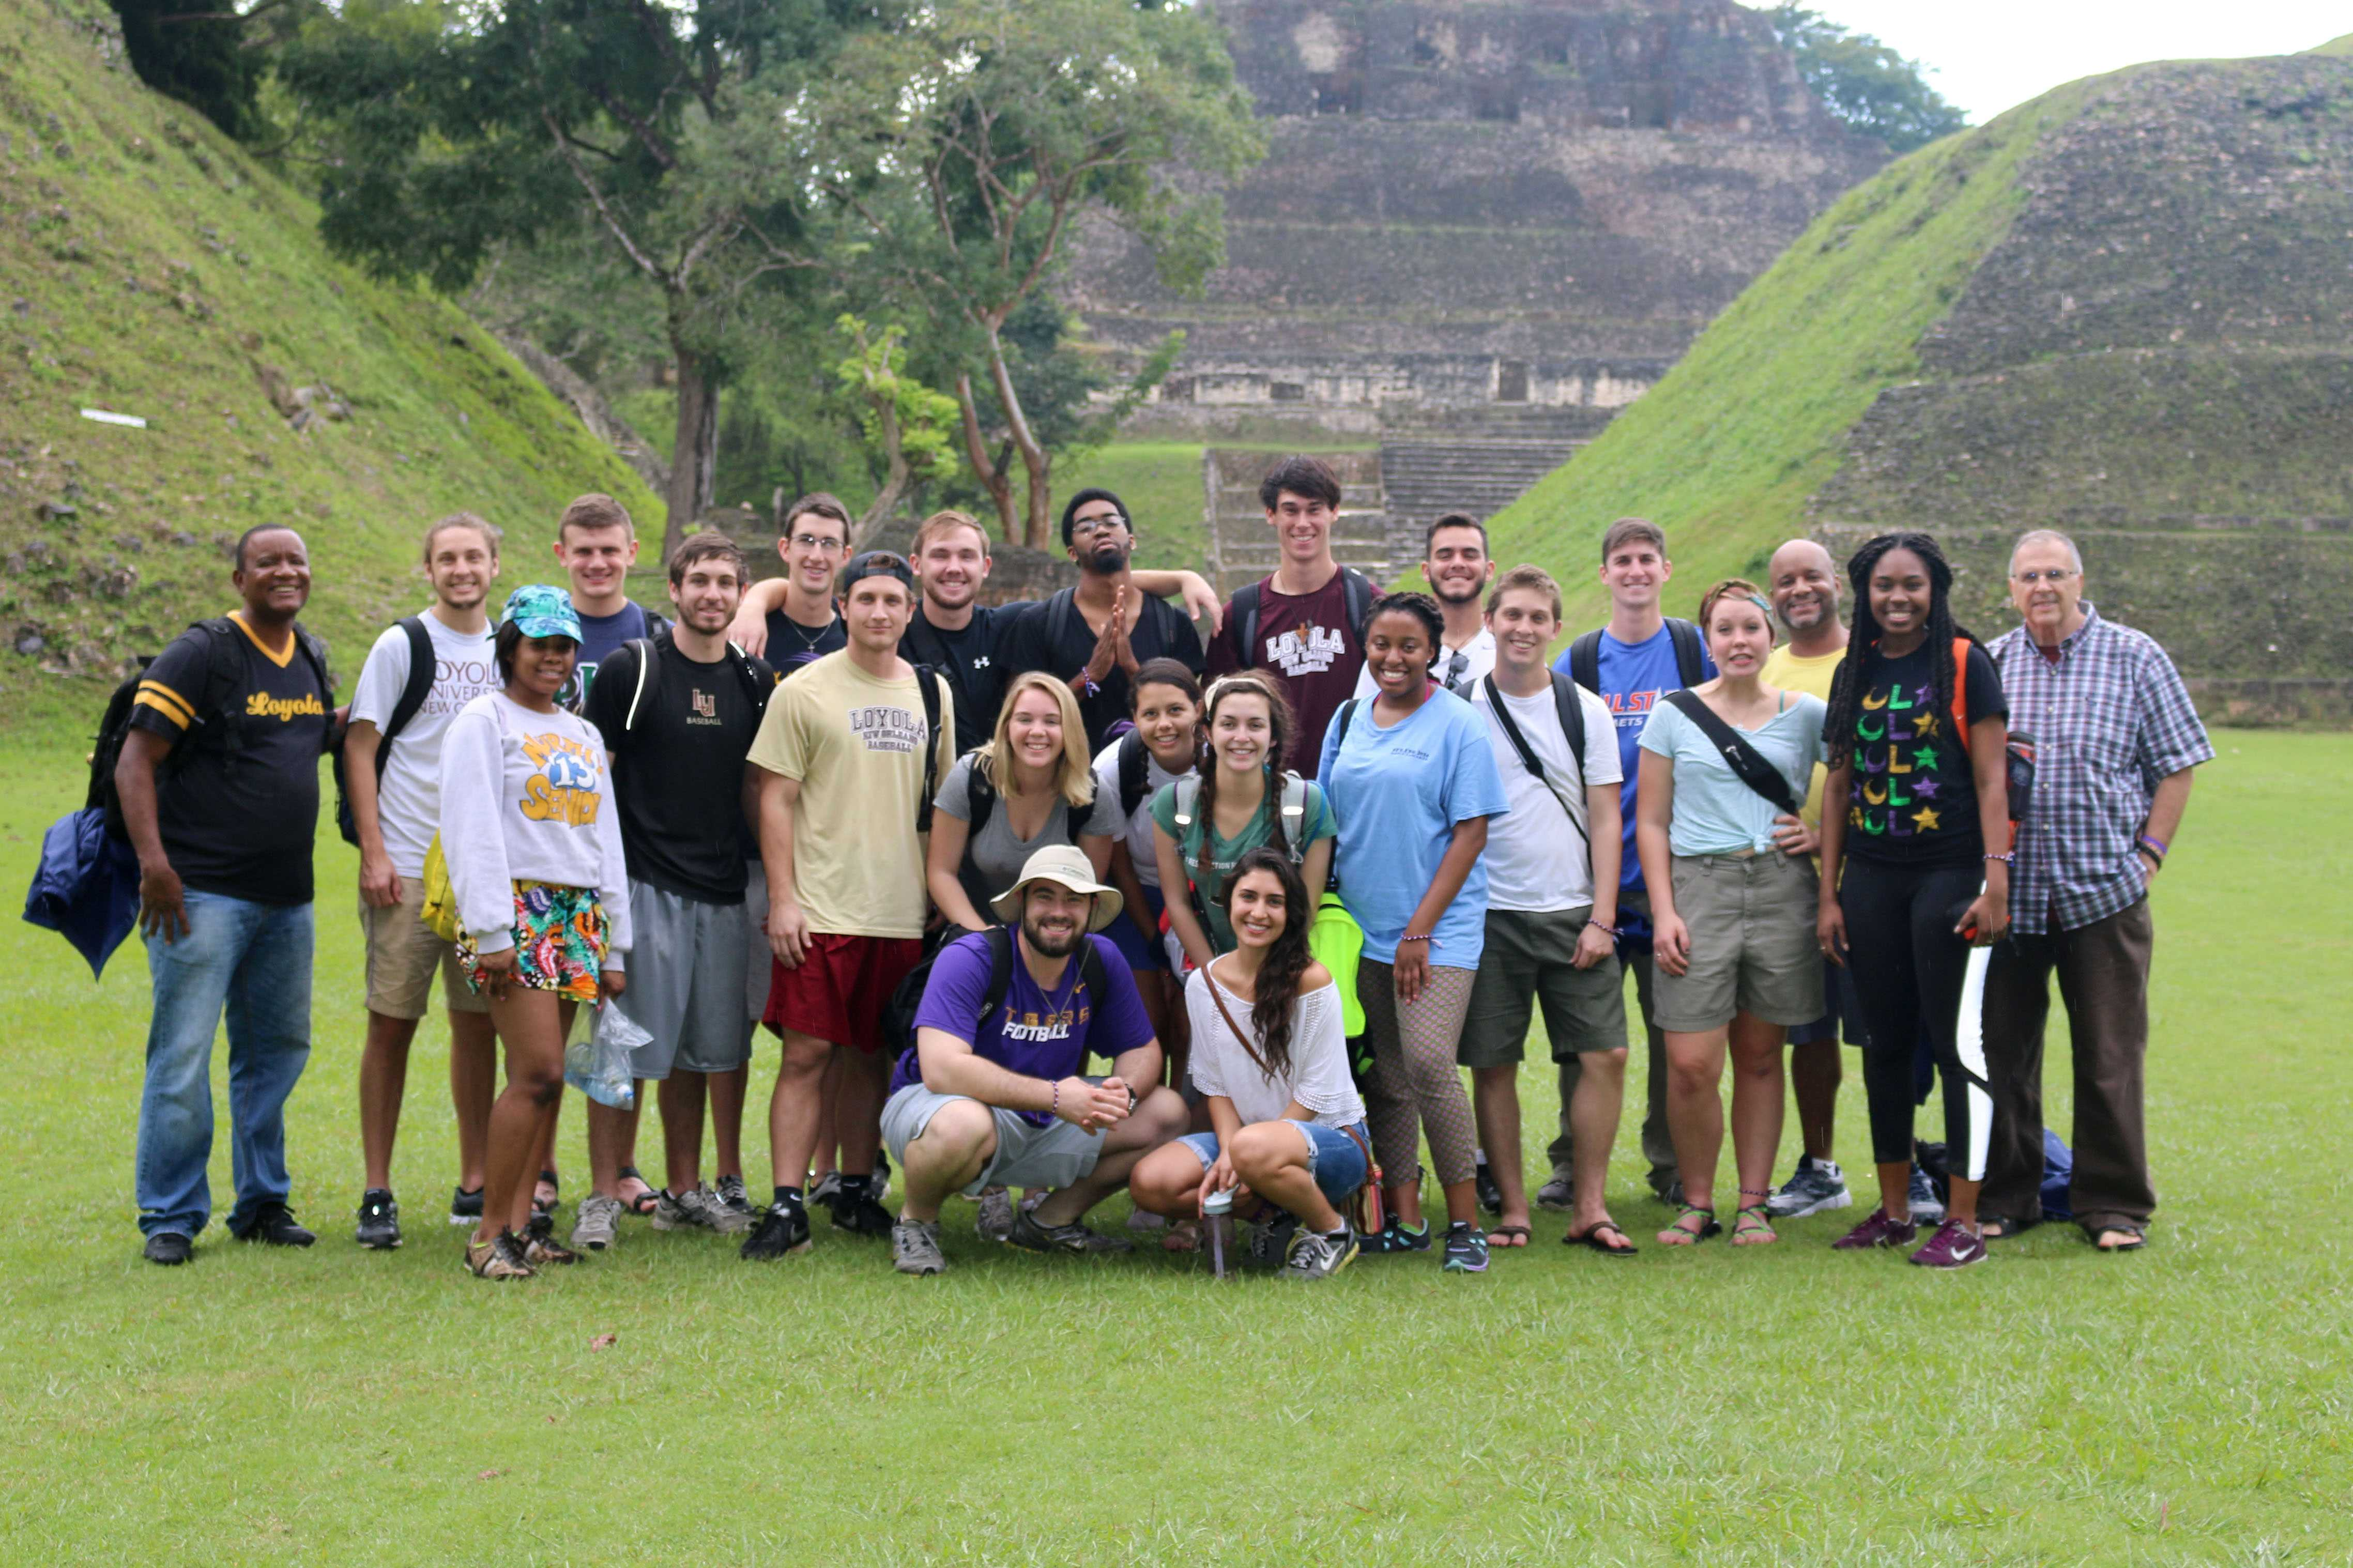 Iggy Vols, along with the members of Loyola's baseball team, visited Belize from Dec. 27 to Jan. 5 to help and serve the local people. Each year, Iggy Vols visit underdeveloped countries to help the underpriviliged by teaching different classes such as math, English and arts and crafts.